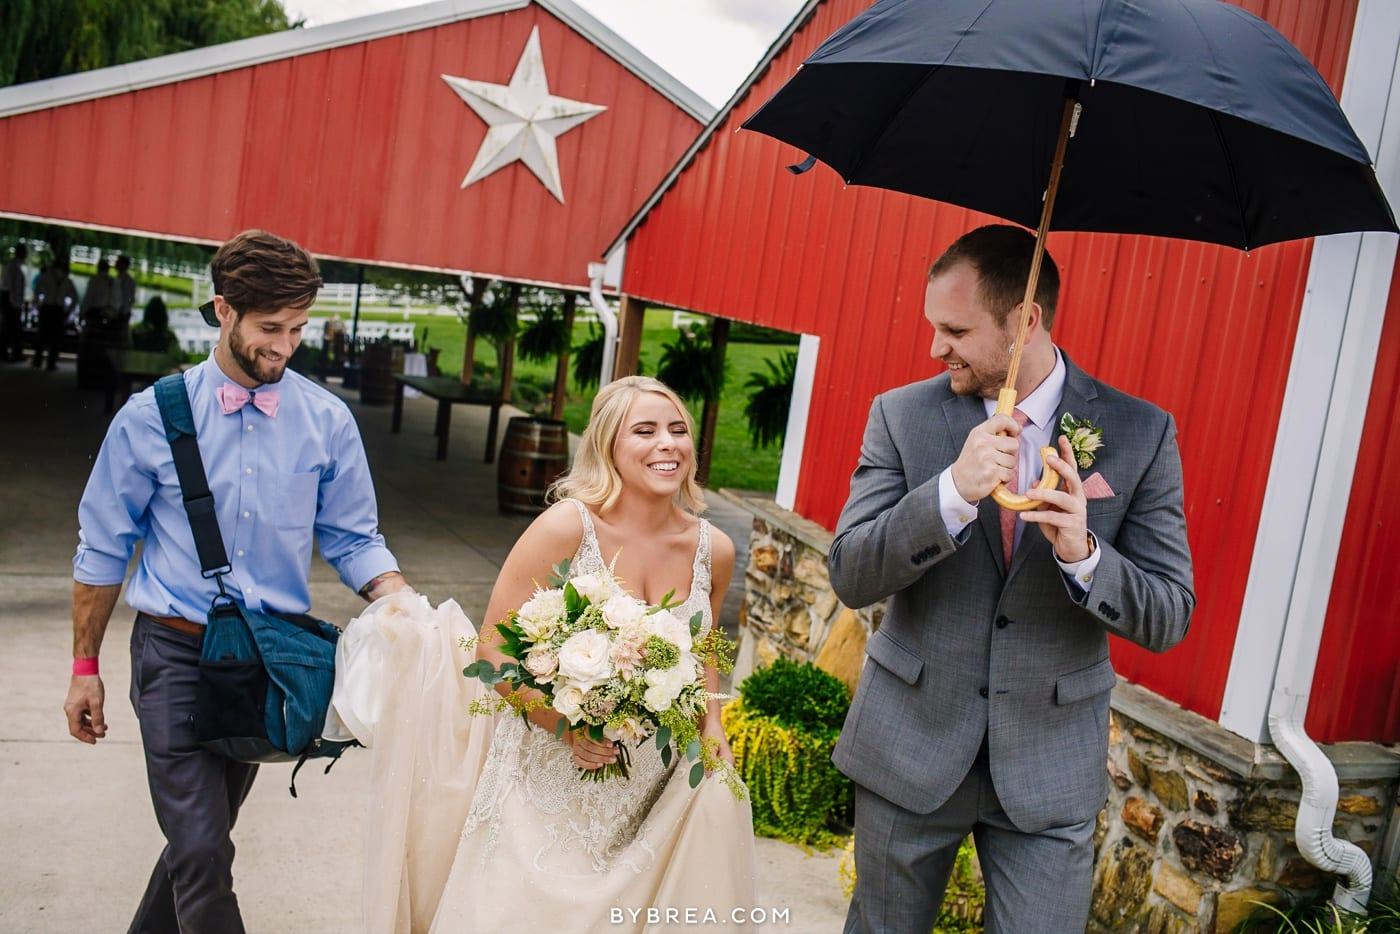 photography-by-brea-best-baltimore-wedding-photographer-bts_0838